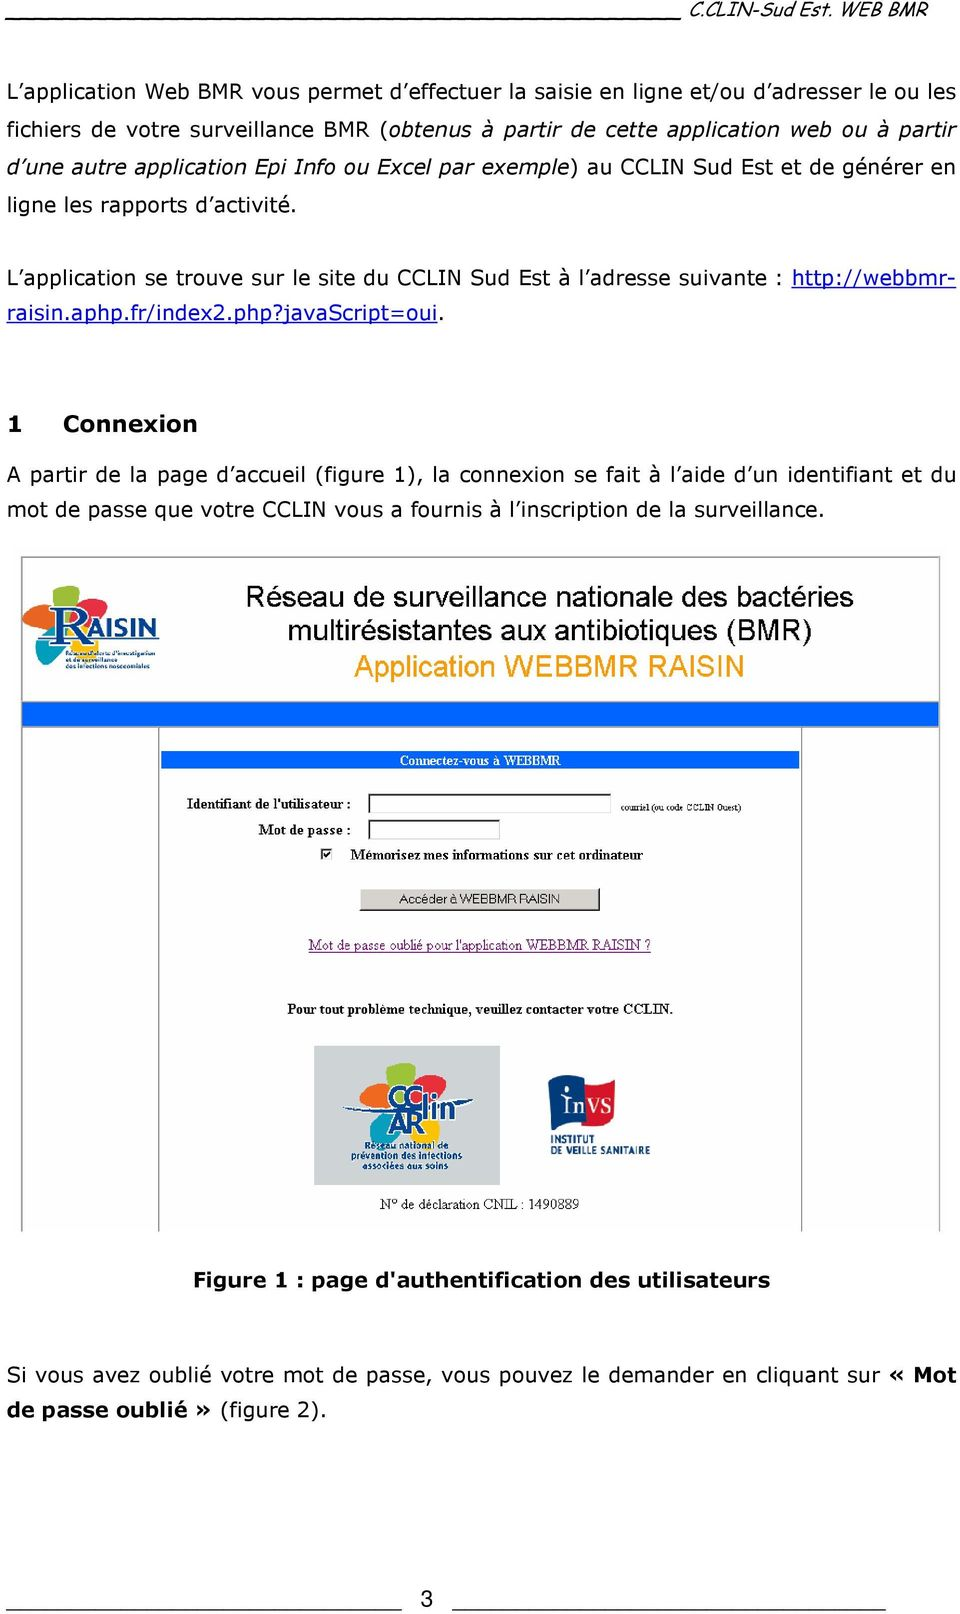 L application se trouve sur le site du CCLIN Sud Est à l adresse suivante : http://webbmrraisin.aphp.fr/index2.php?javascript=oui.